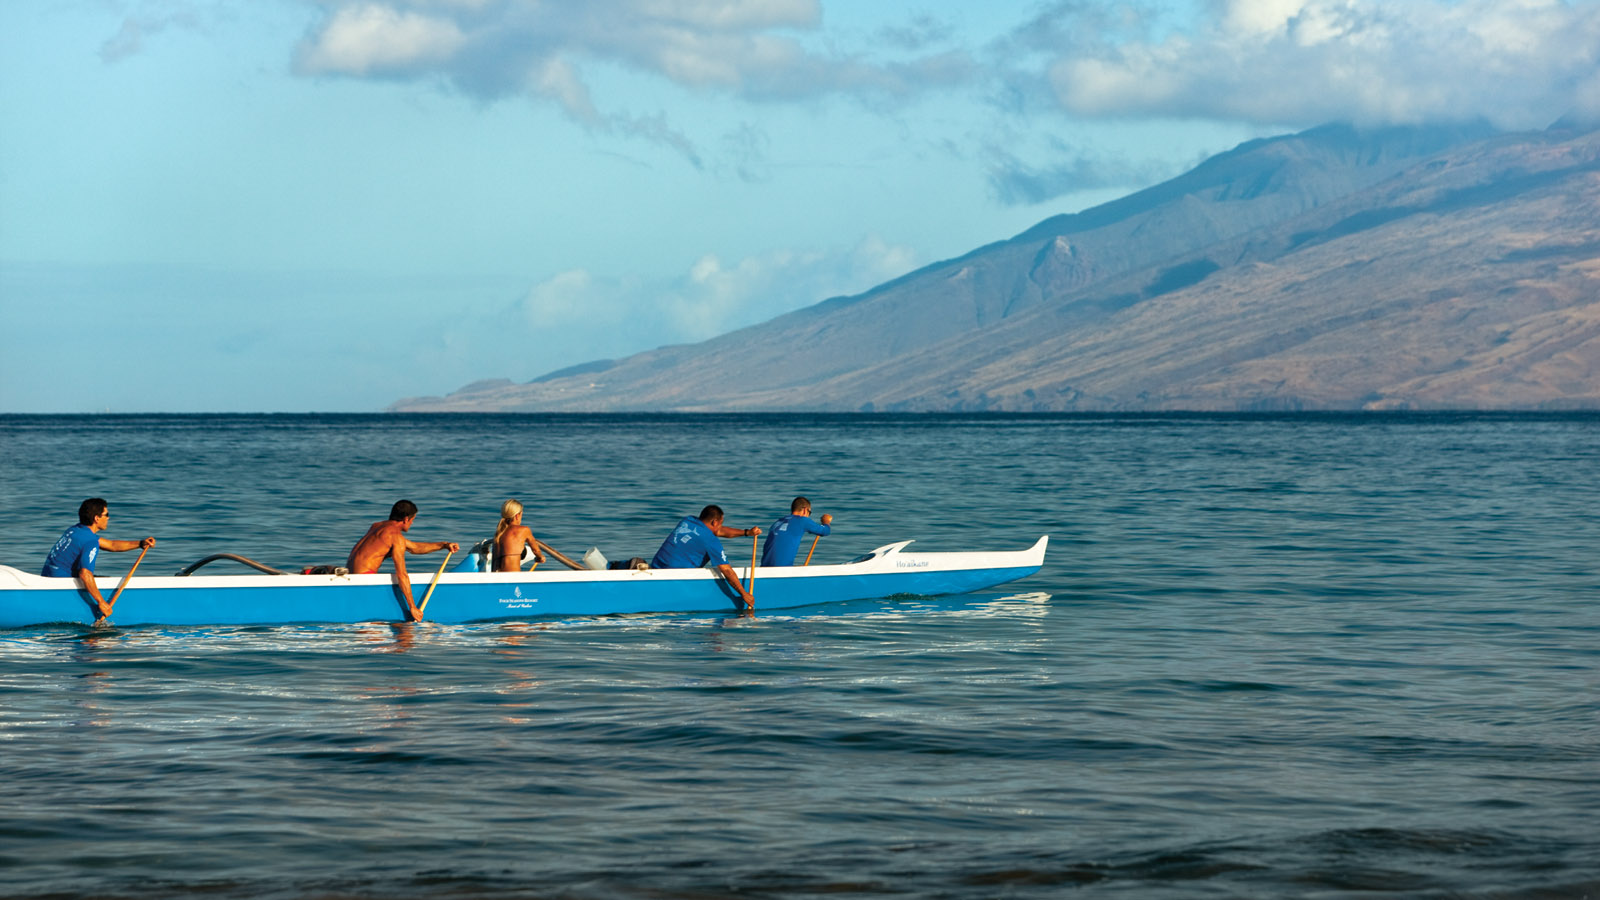 Outrigger experience in Maui, Hawaii at Four Seasons Resort